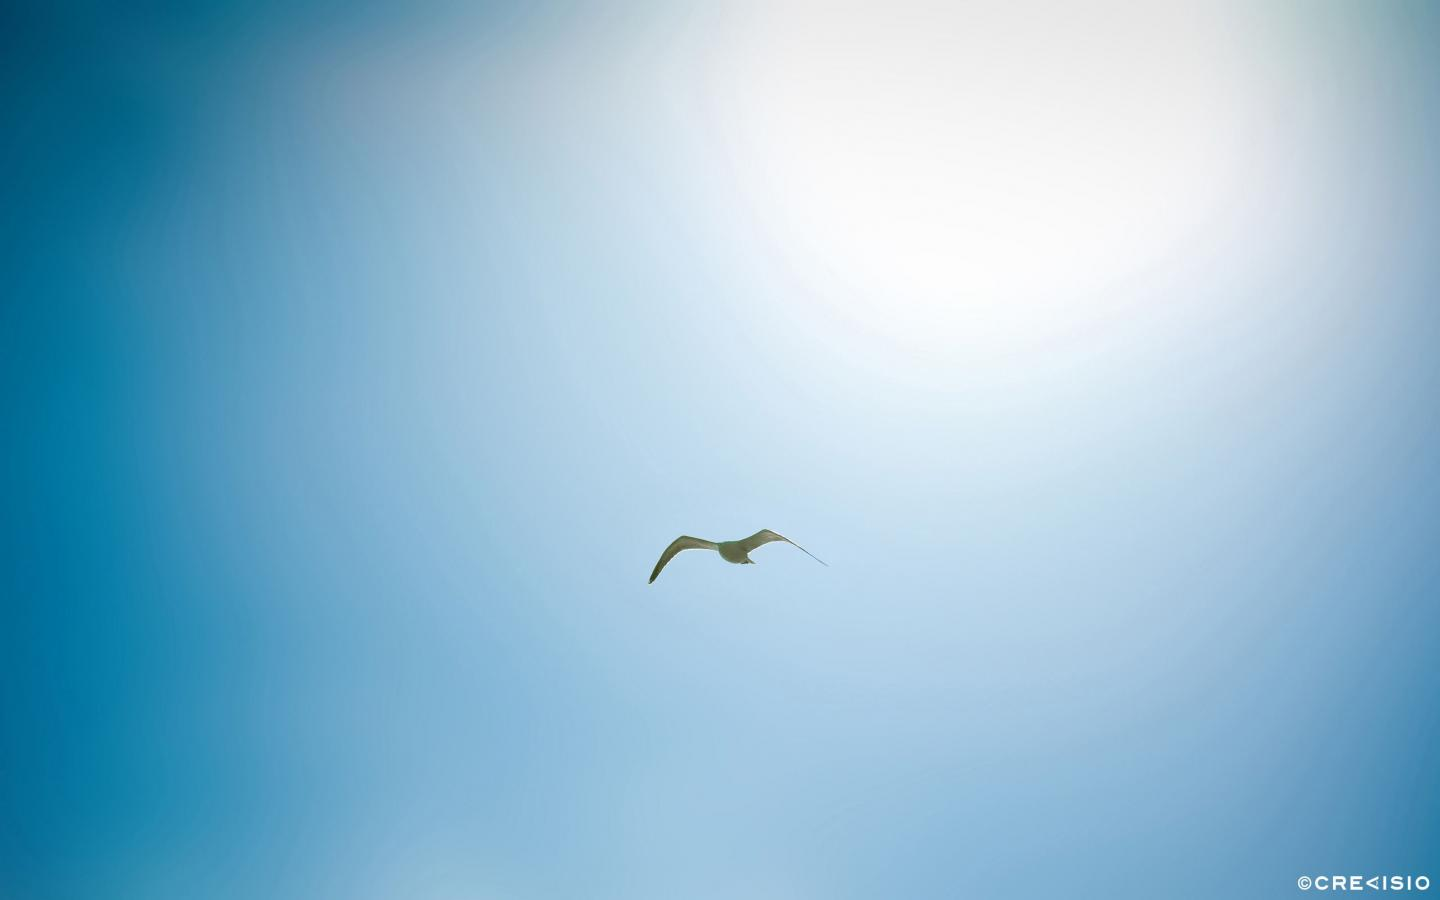 Lonely Bird by Crevisio